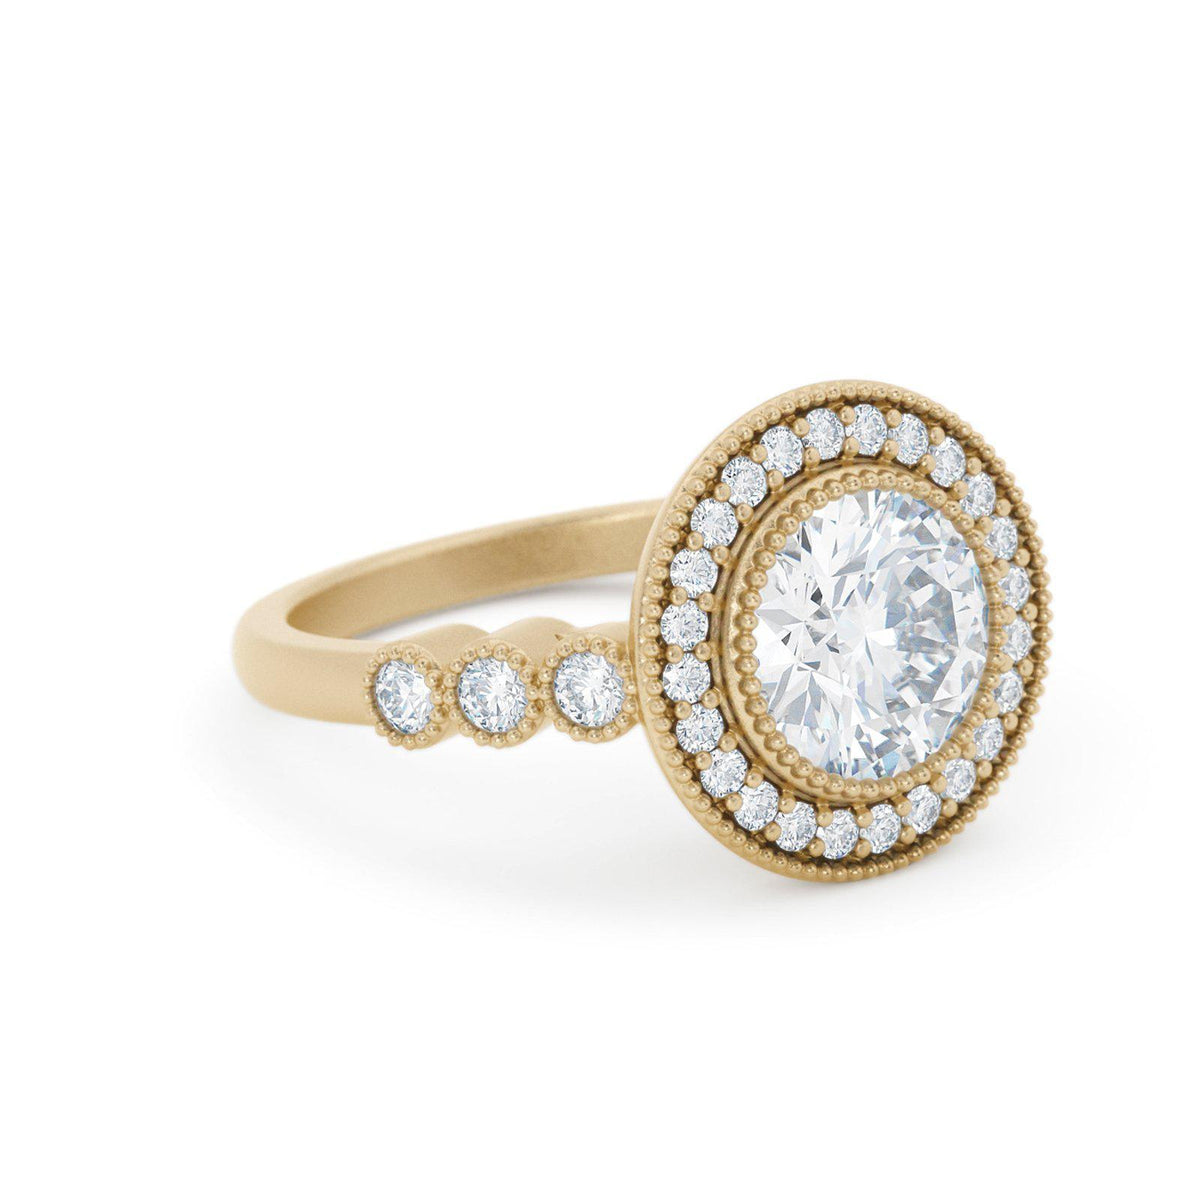 Juliet Diamond Halo Engagement Ring Vintage Inspired